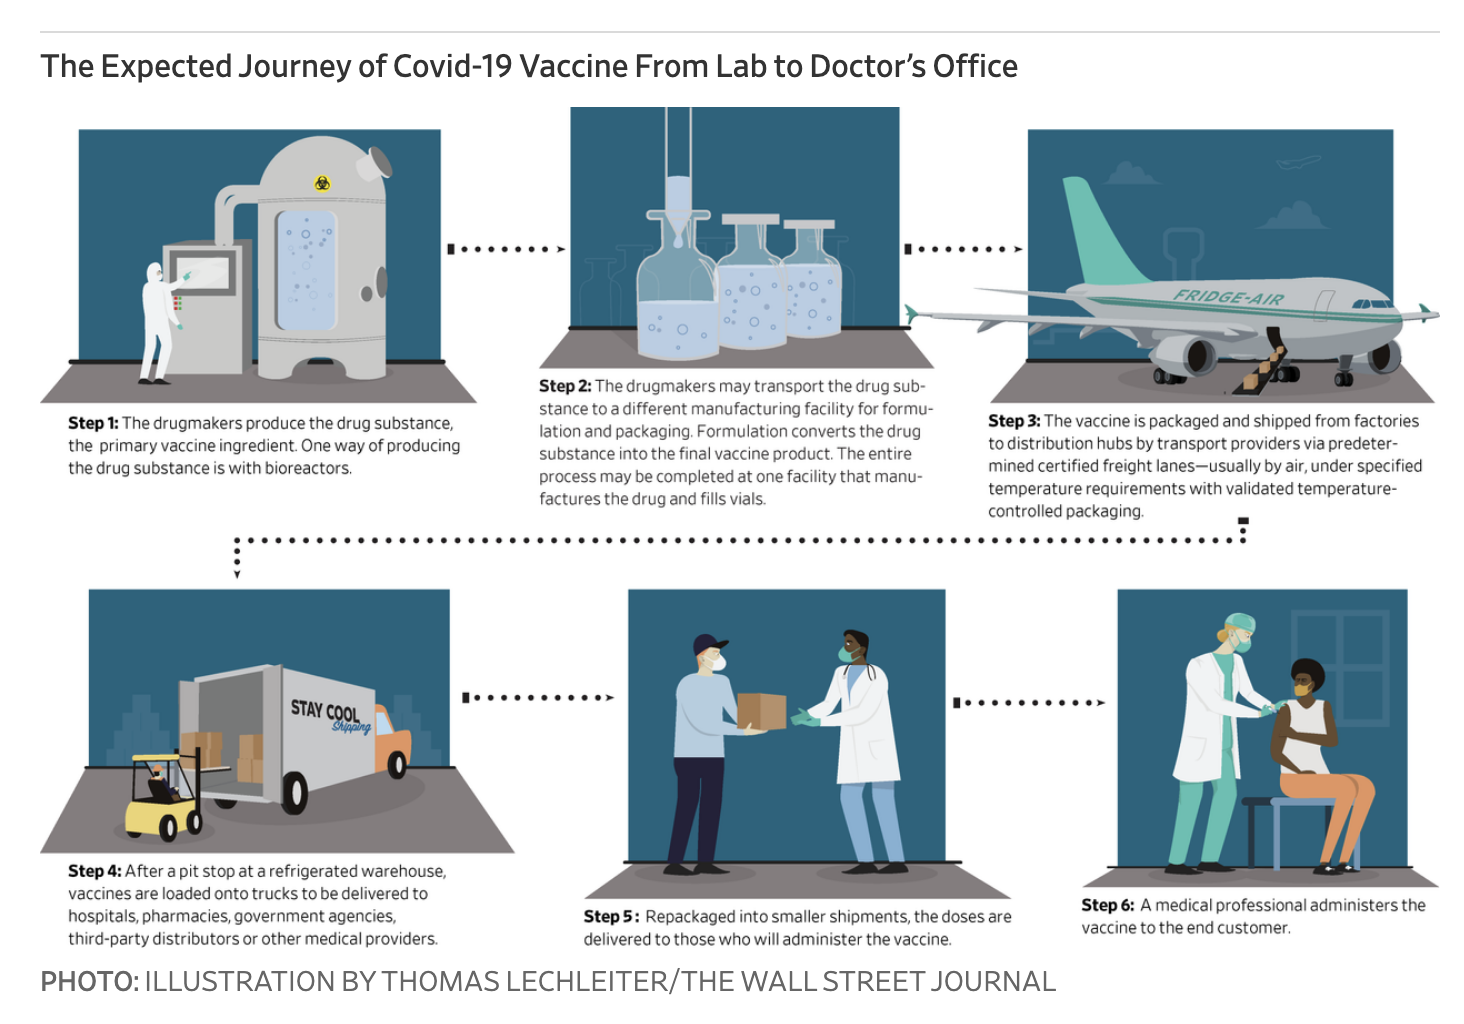 The Expected Journey of COVID-19 Vaccine from Lab to Doctor's Office